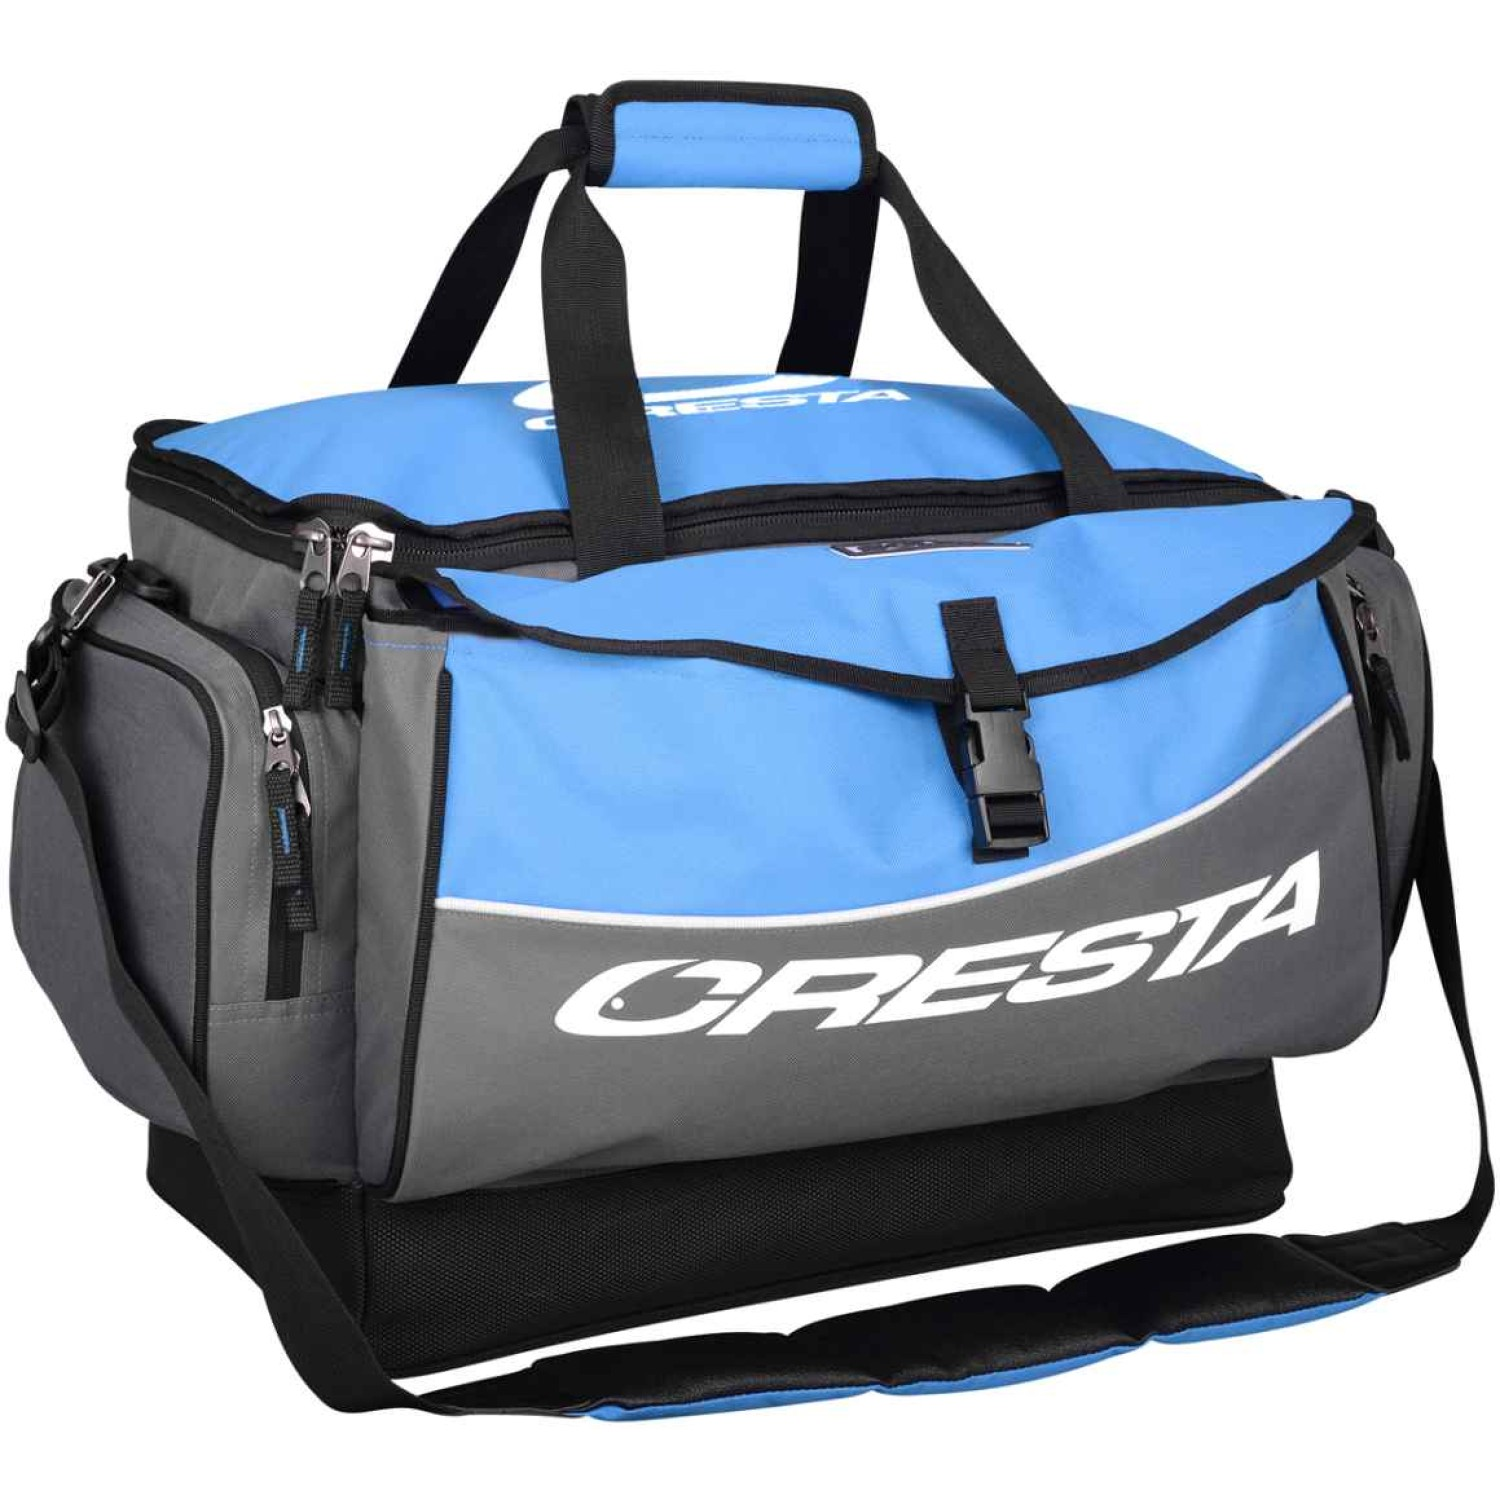 Spro Cresta Solith Carryall 45L